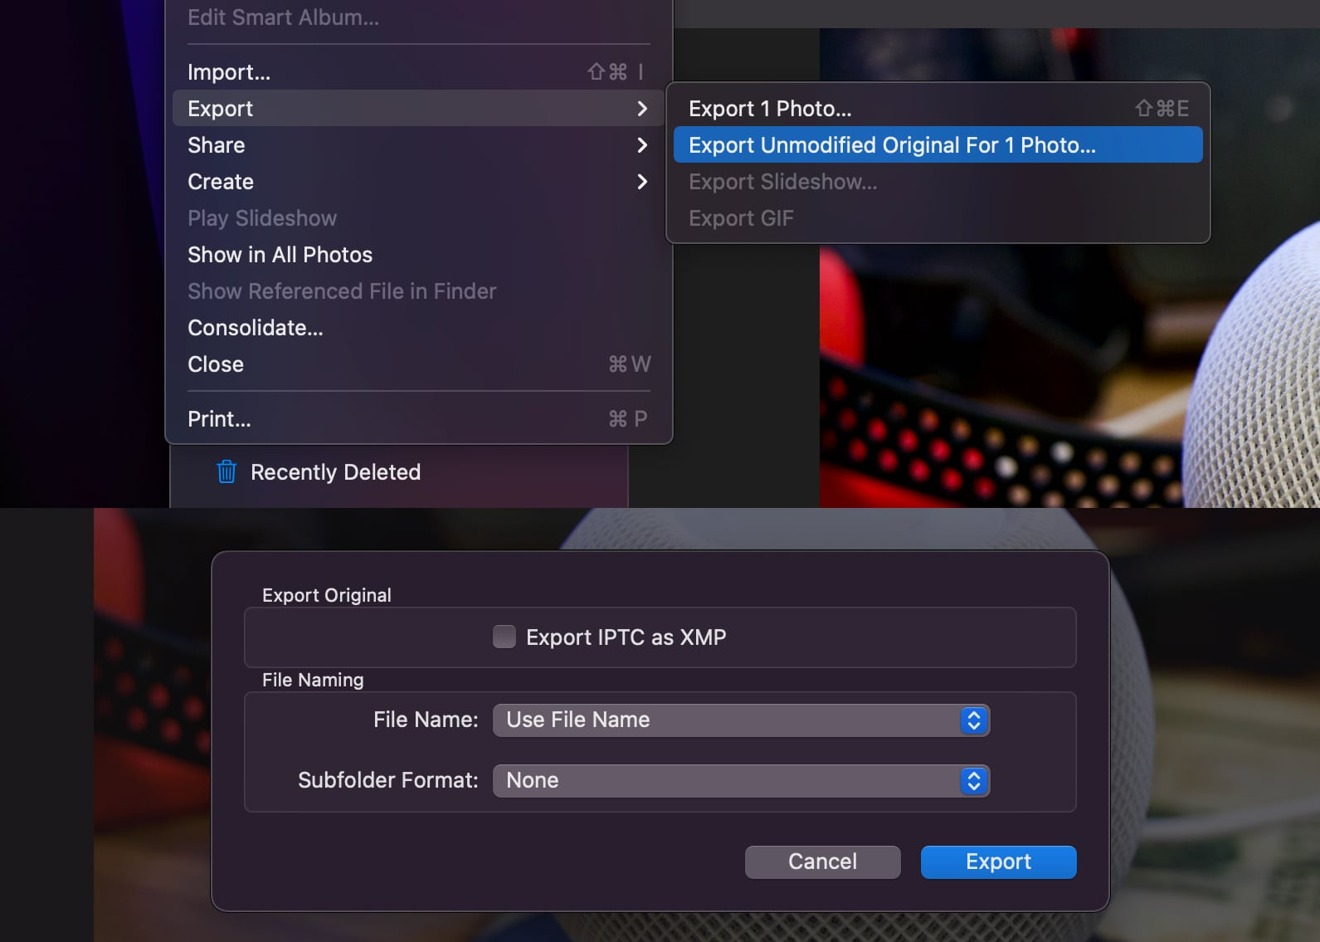 Make sure to use the correct option to export RAW image from Photos